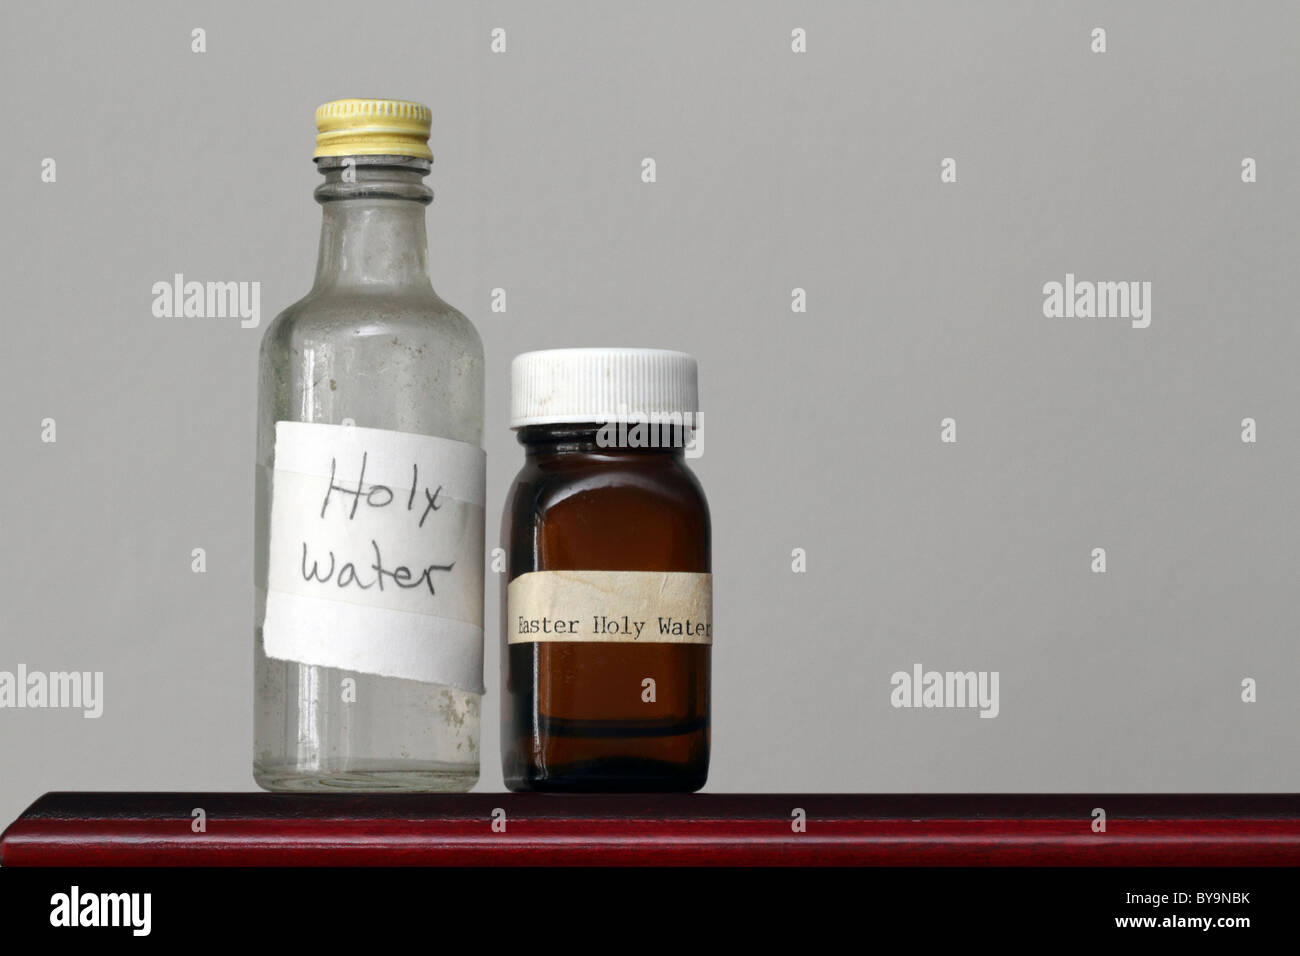 Twon old bottles containing Holy Water - Stock Image